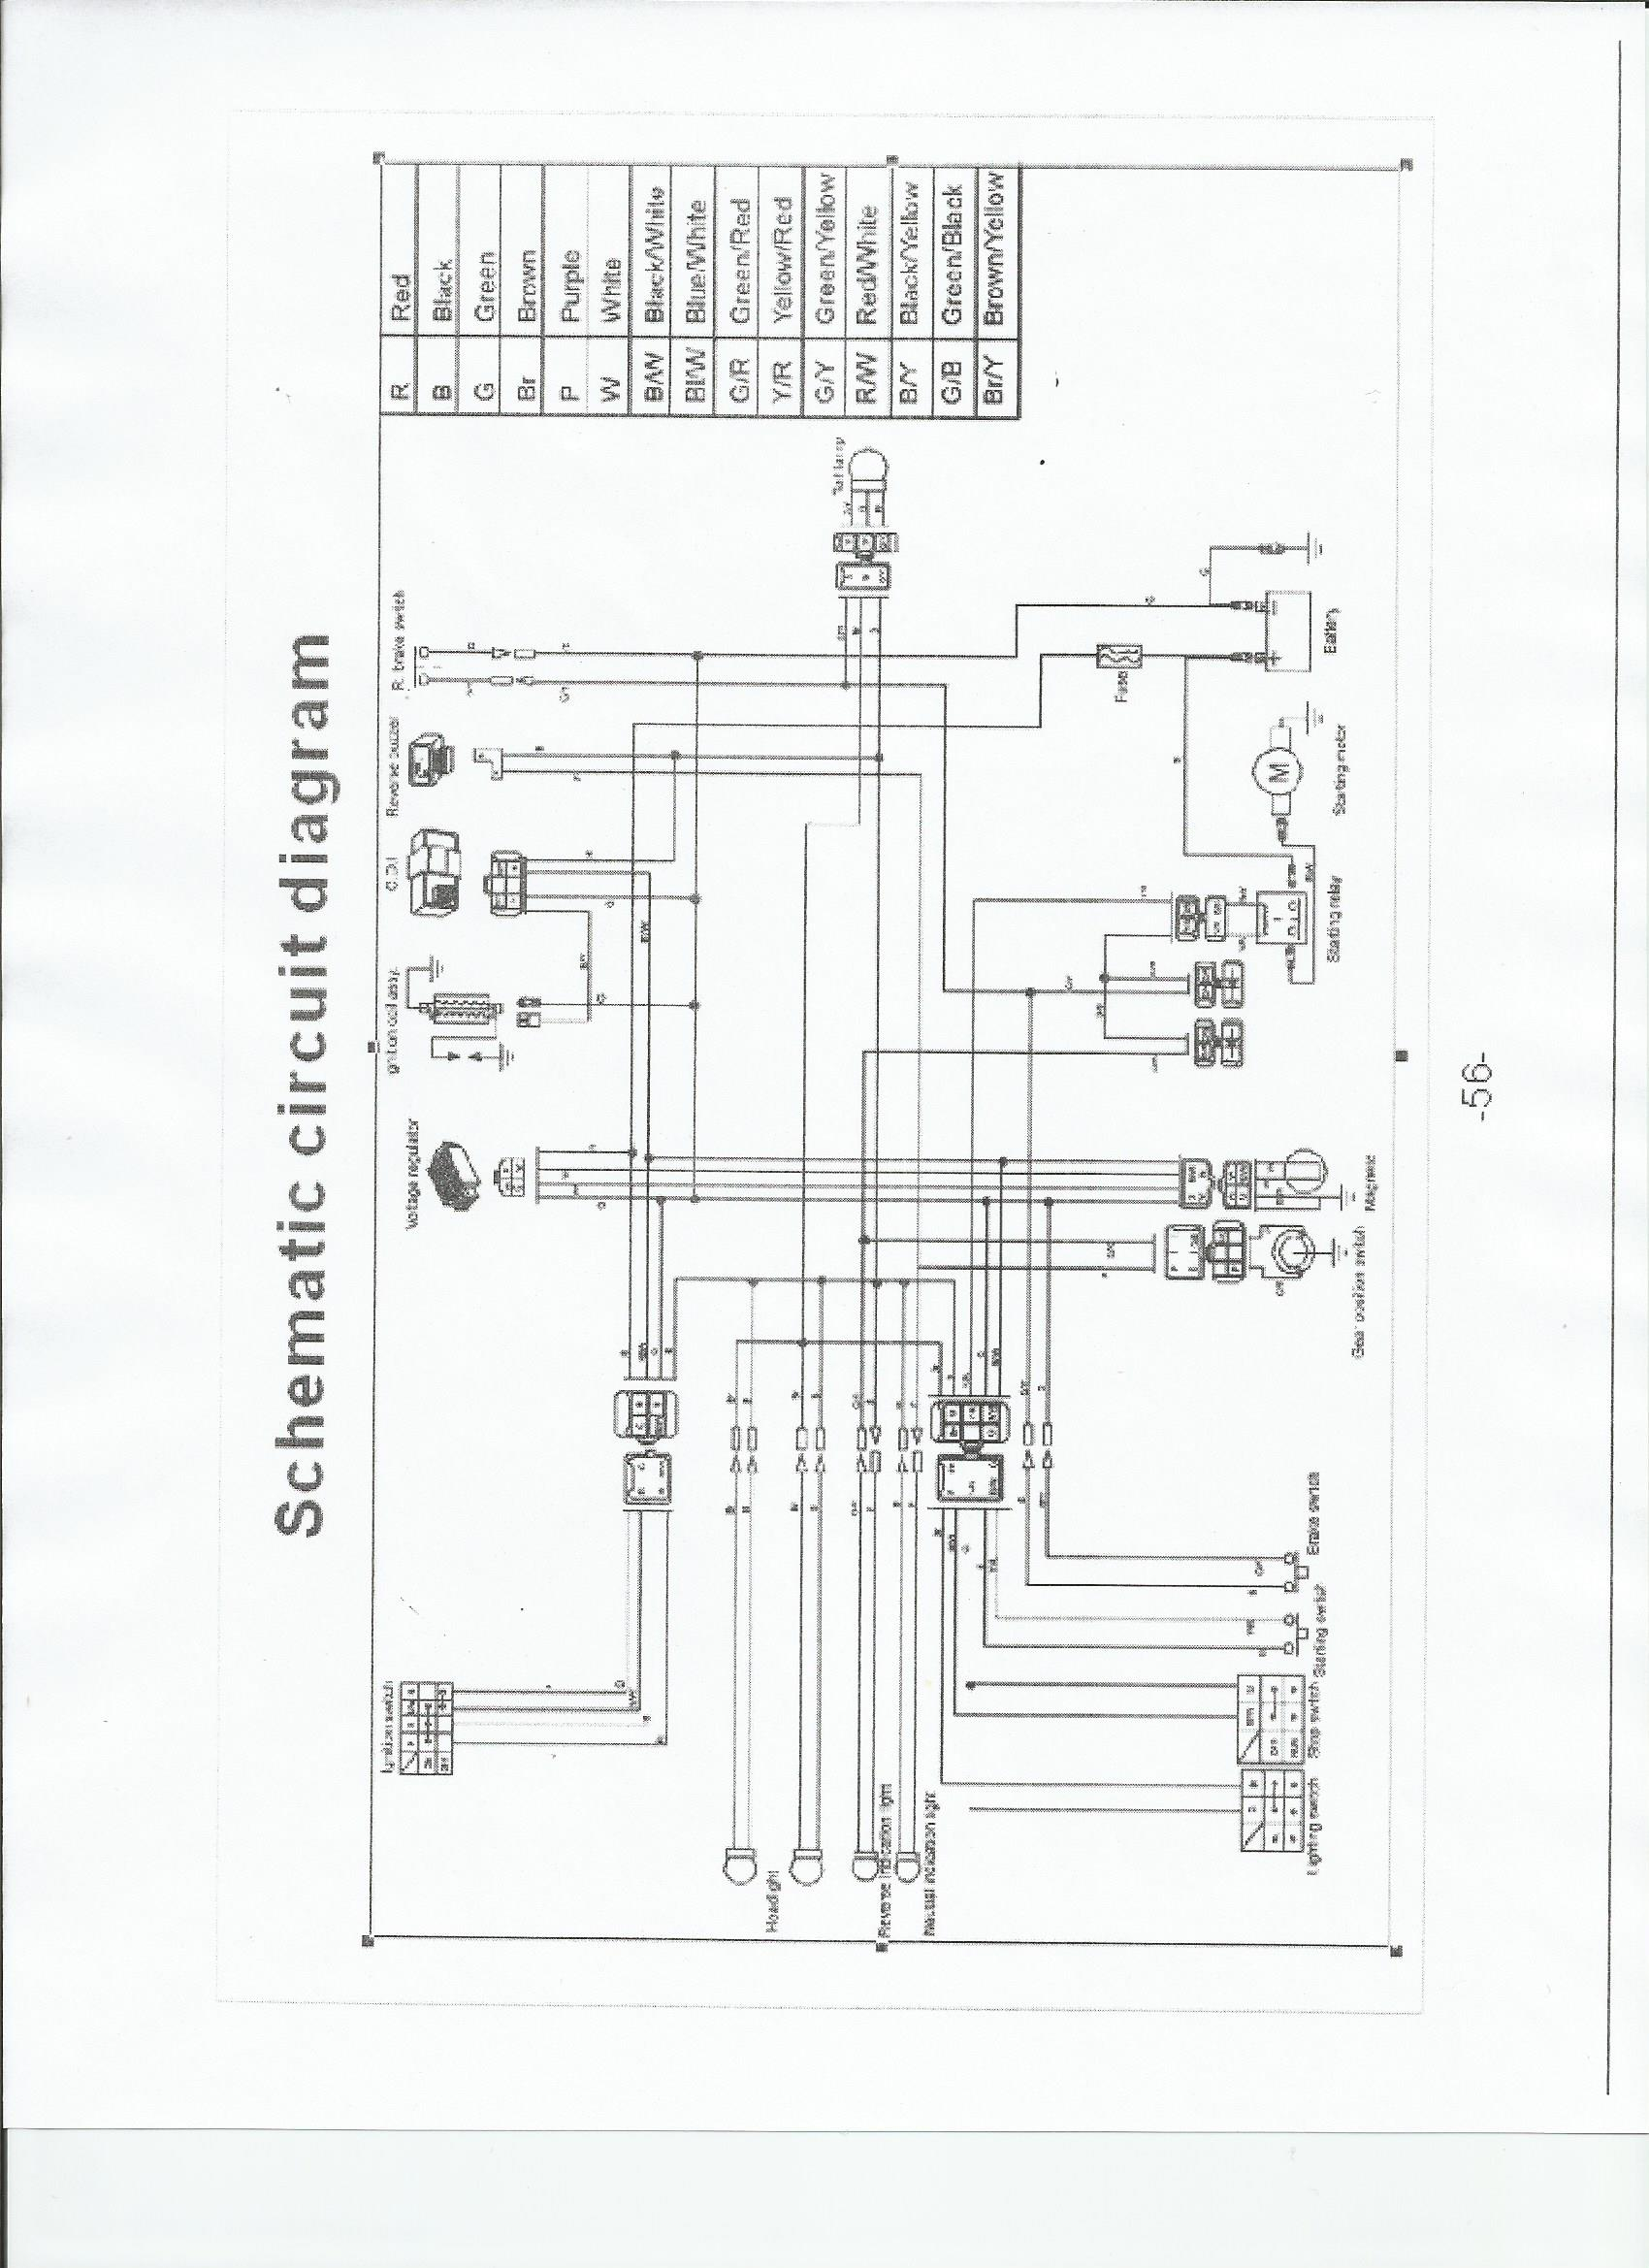 Npr Tail Light Wiring Diagram In Addition Gm Map Sensor Wiring Diagram